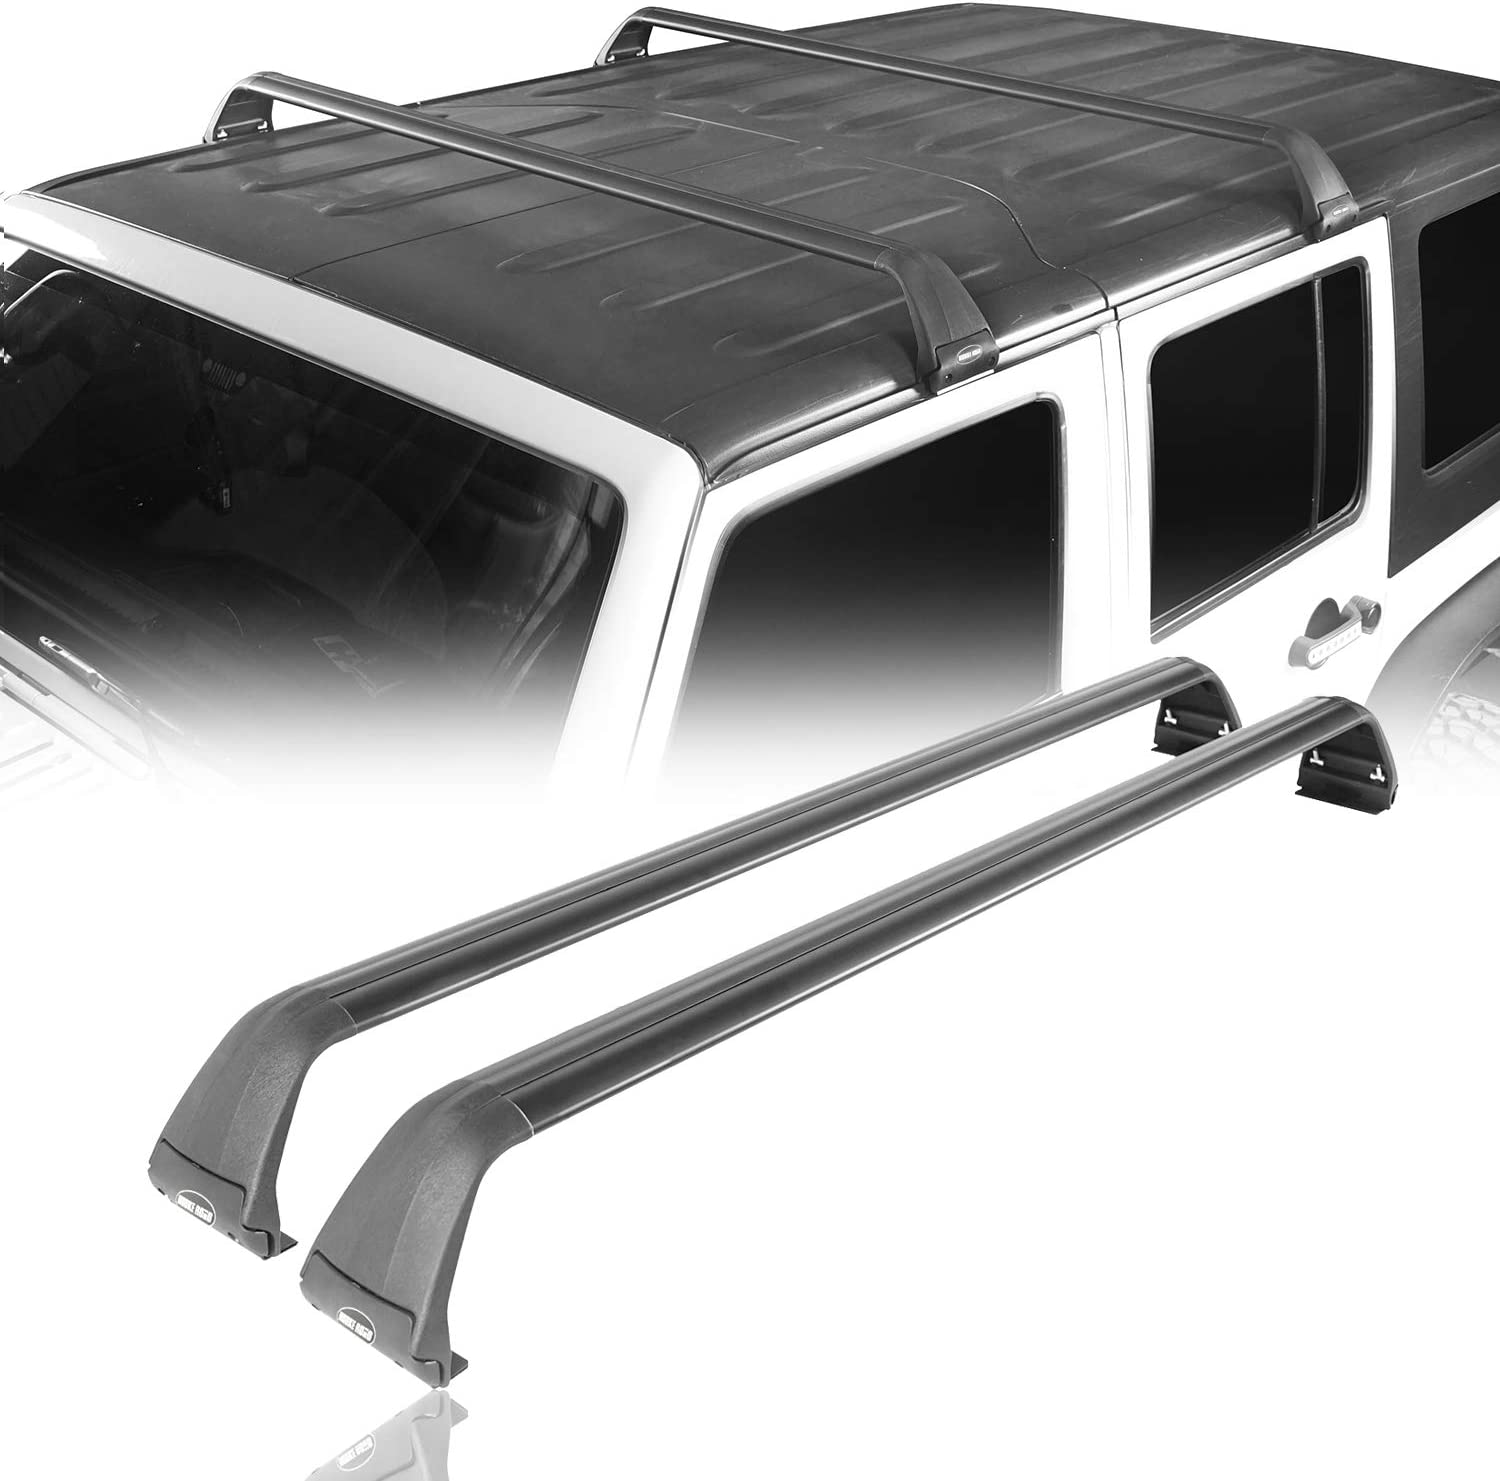 Amazon Com Hooke Road Removable Roof Rack Cross Bars Kayak Cargo Carriers For Hard Top Compatible With Jeep Wrangler Jk Jl Gladiator Jt 2007 2021 Automotive